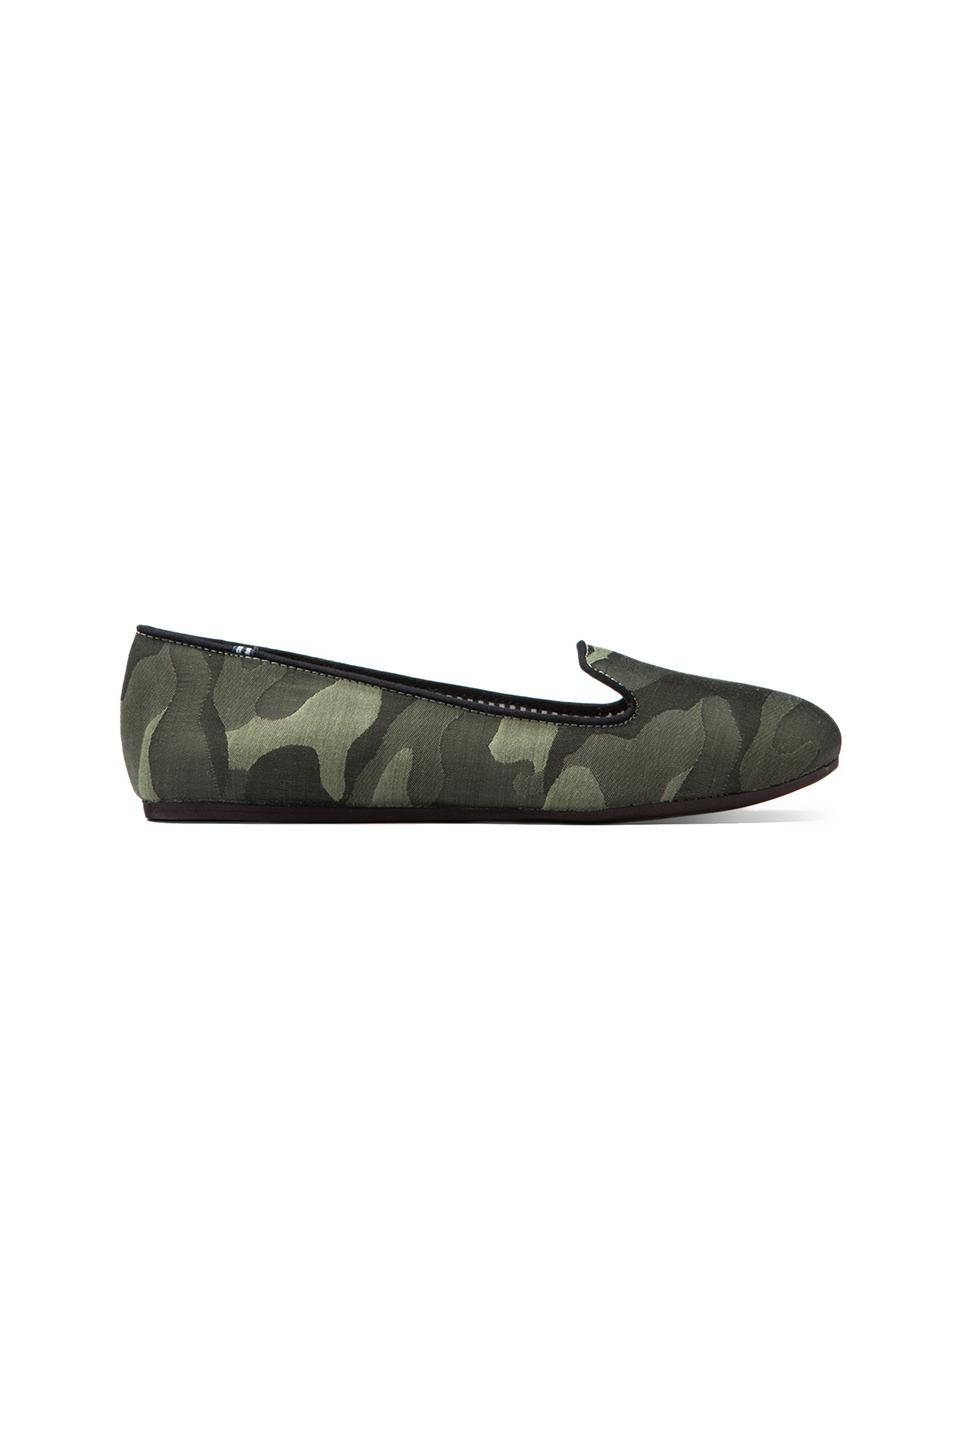 Charles Philip Shanghai Sheila Silk Camo Flat in Military Green